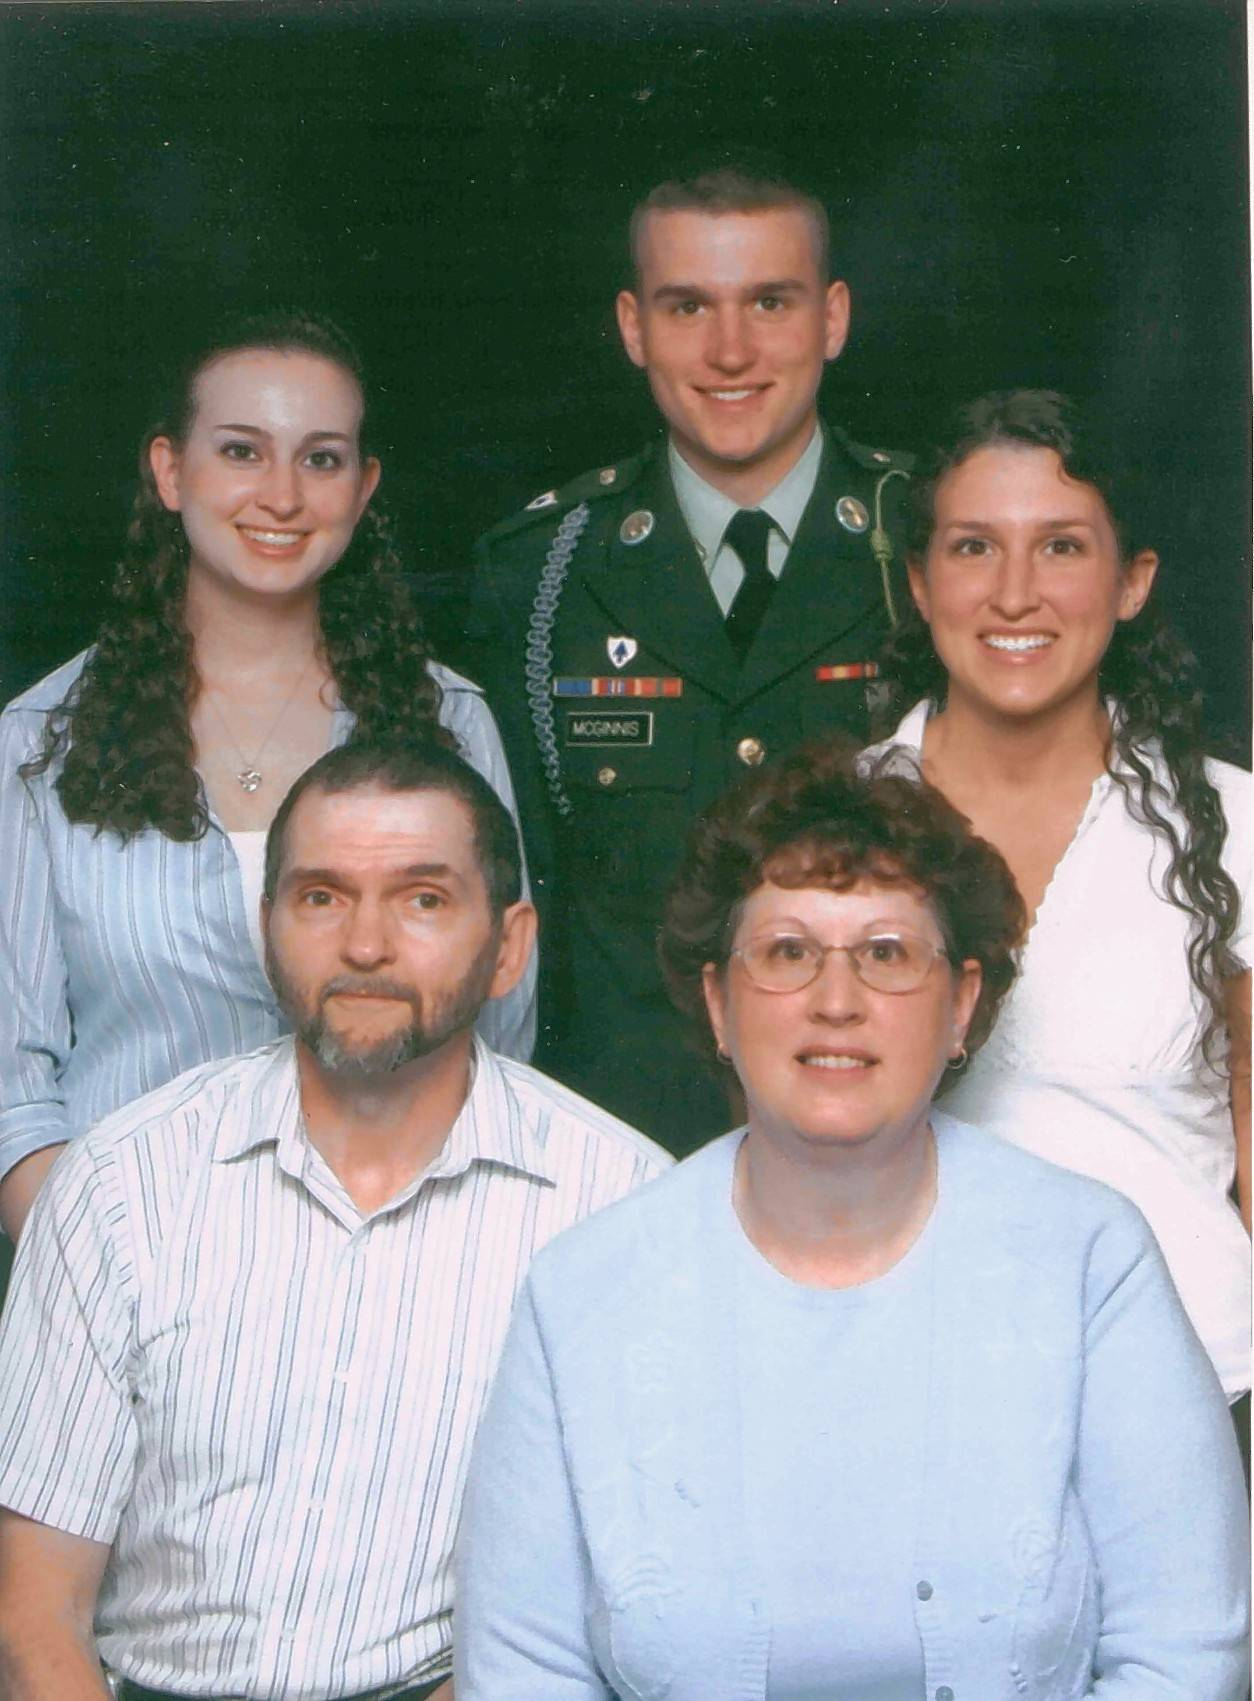 Ross A. McGinnis, center, with his sisters, Katie Orbison and Becky Gorman, and his parents, Tom and Romayne McGinnis.